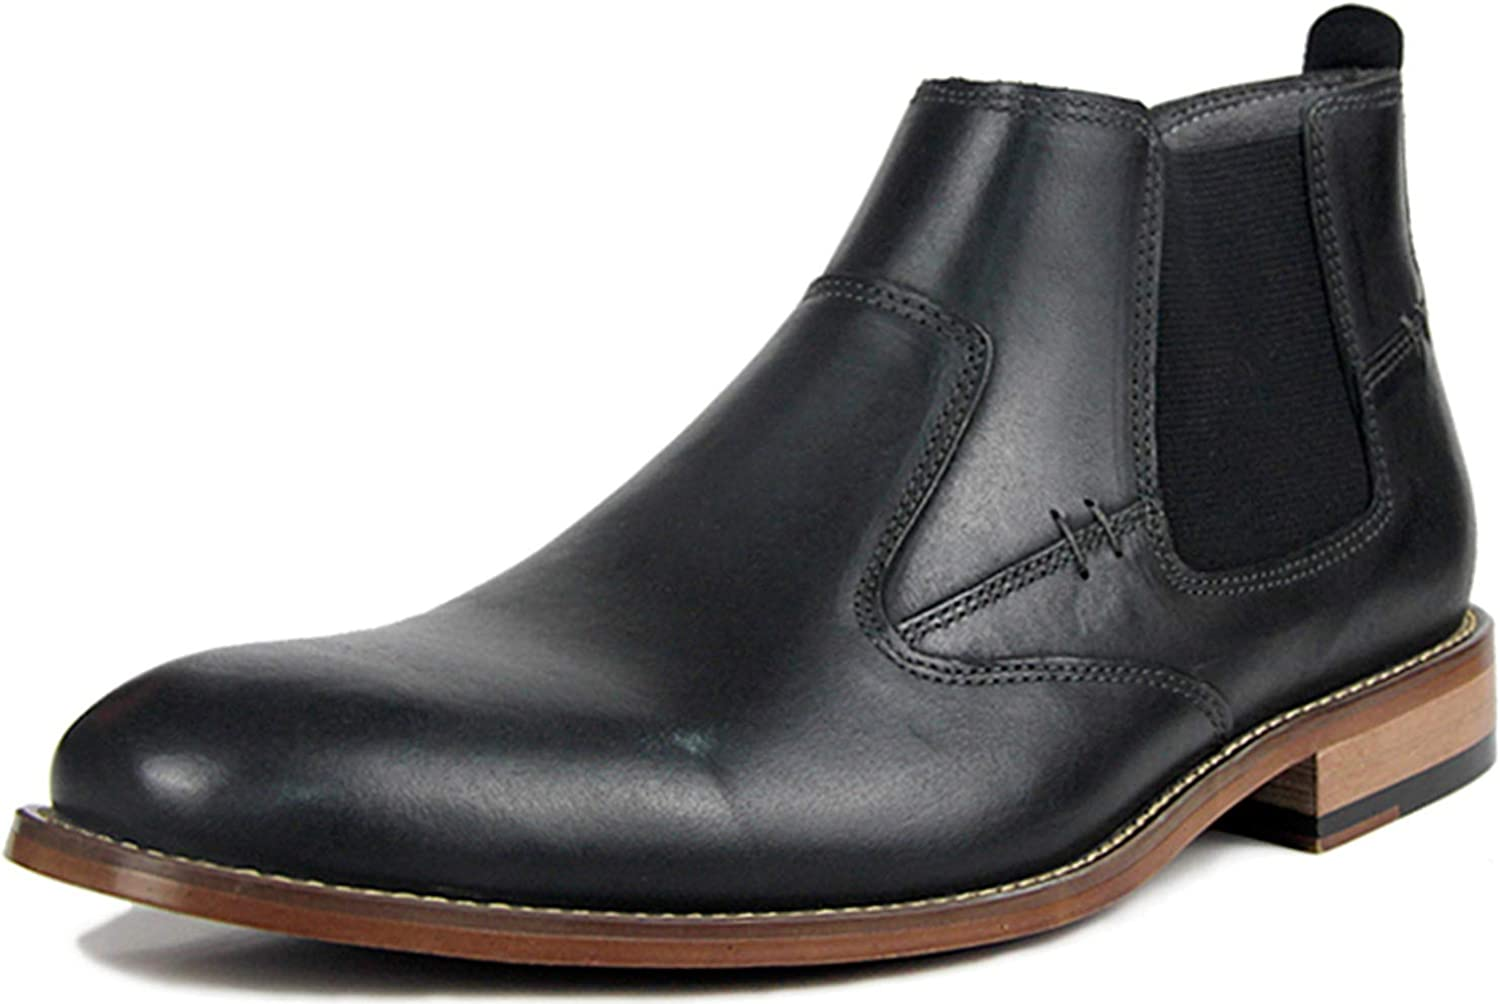 JIONS Mens Retro Leather Chelsea Boots Slip-on Dress Casual Ankle shoes 13 Size